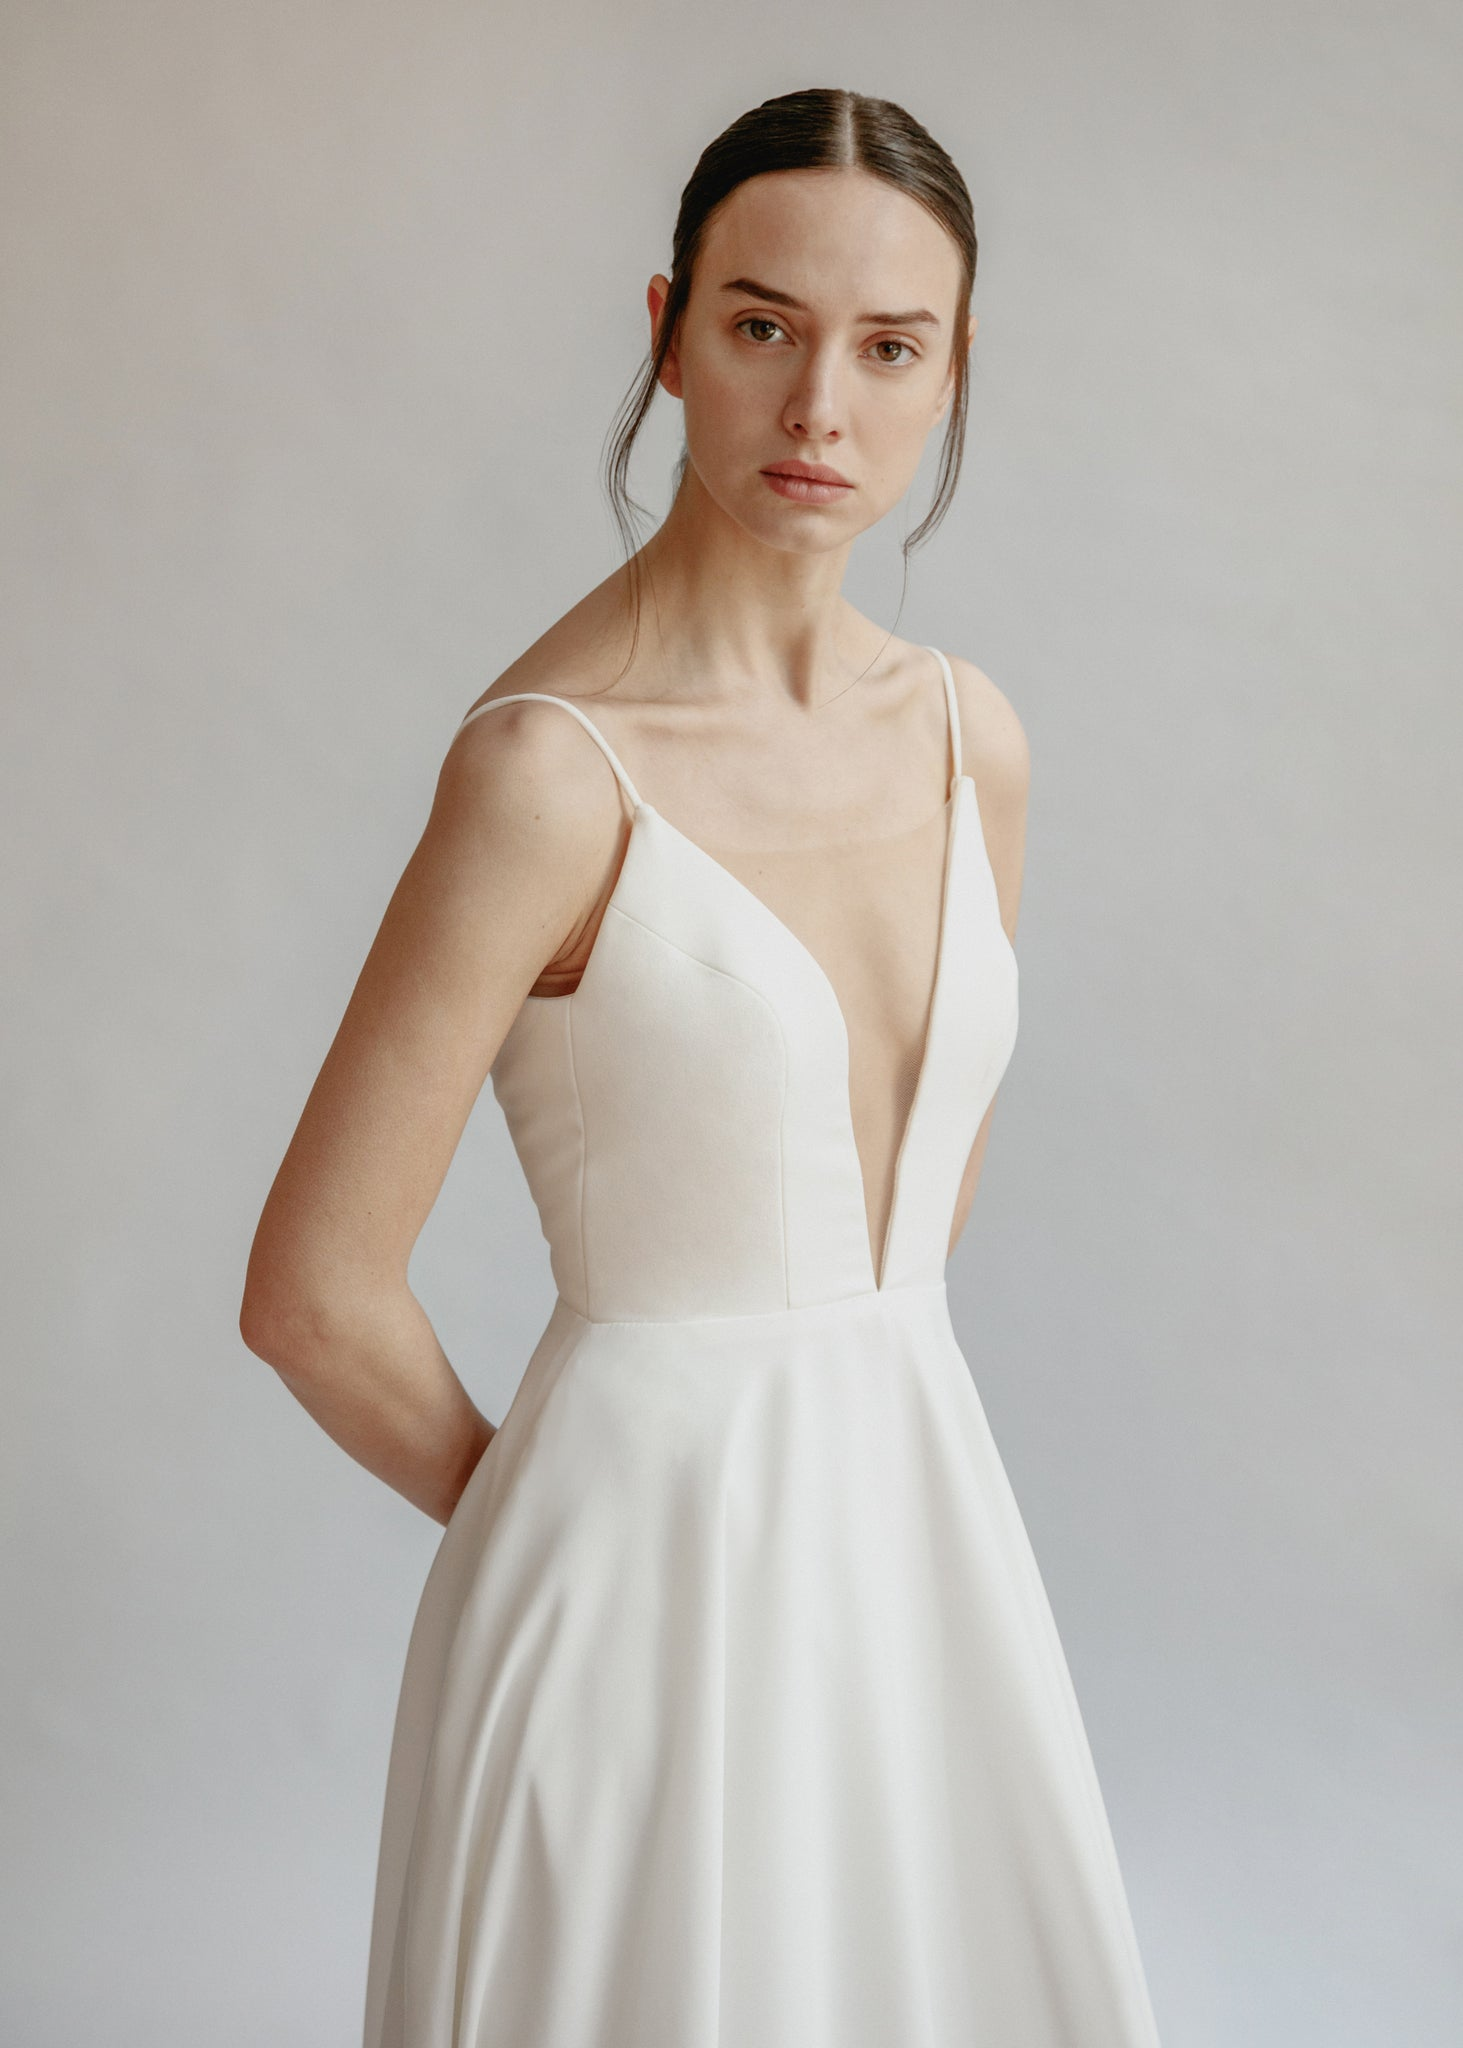 Low cut simple a-line wedding dress with pockets and an extra long train